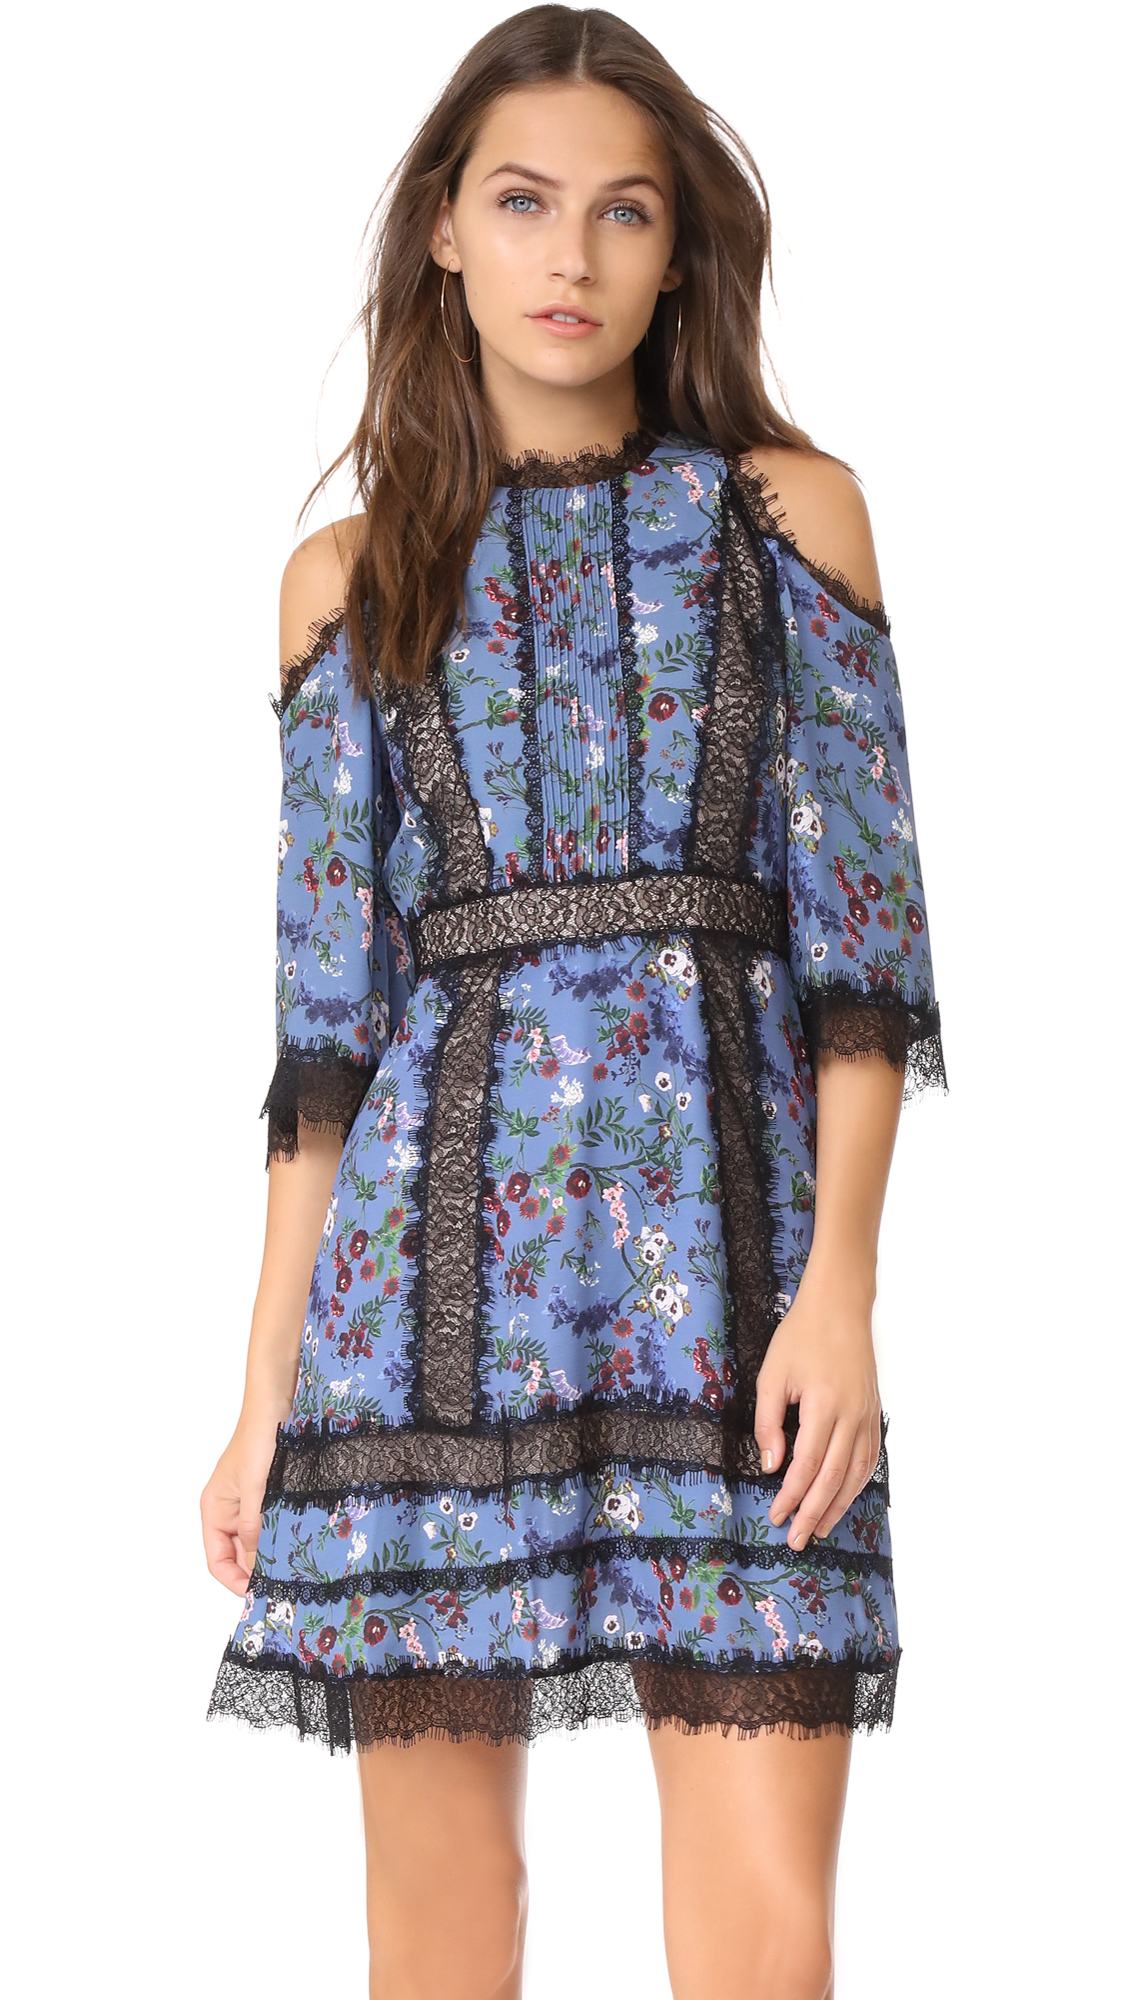 alice + olivia Gatz Cold Shoulder Dress - Garden Party